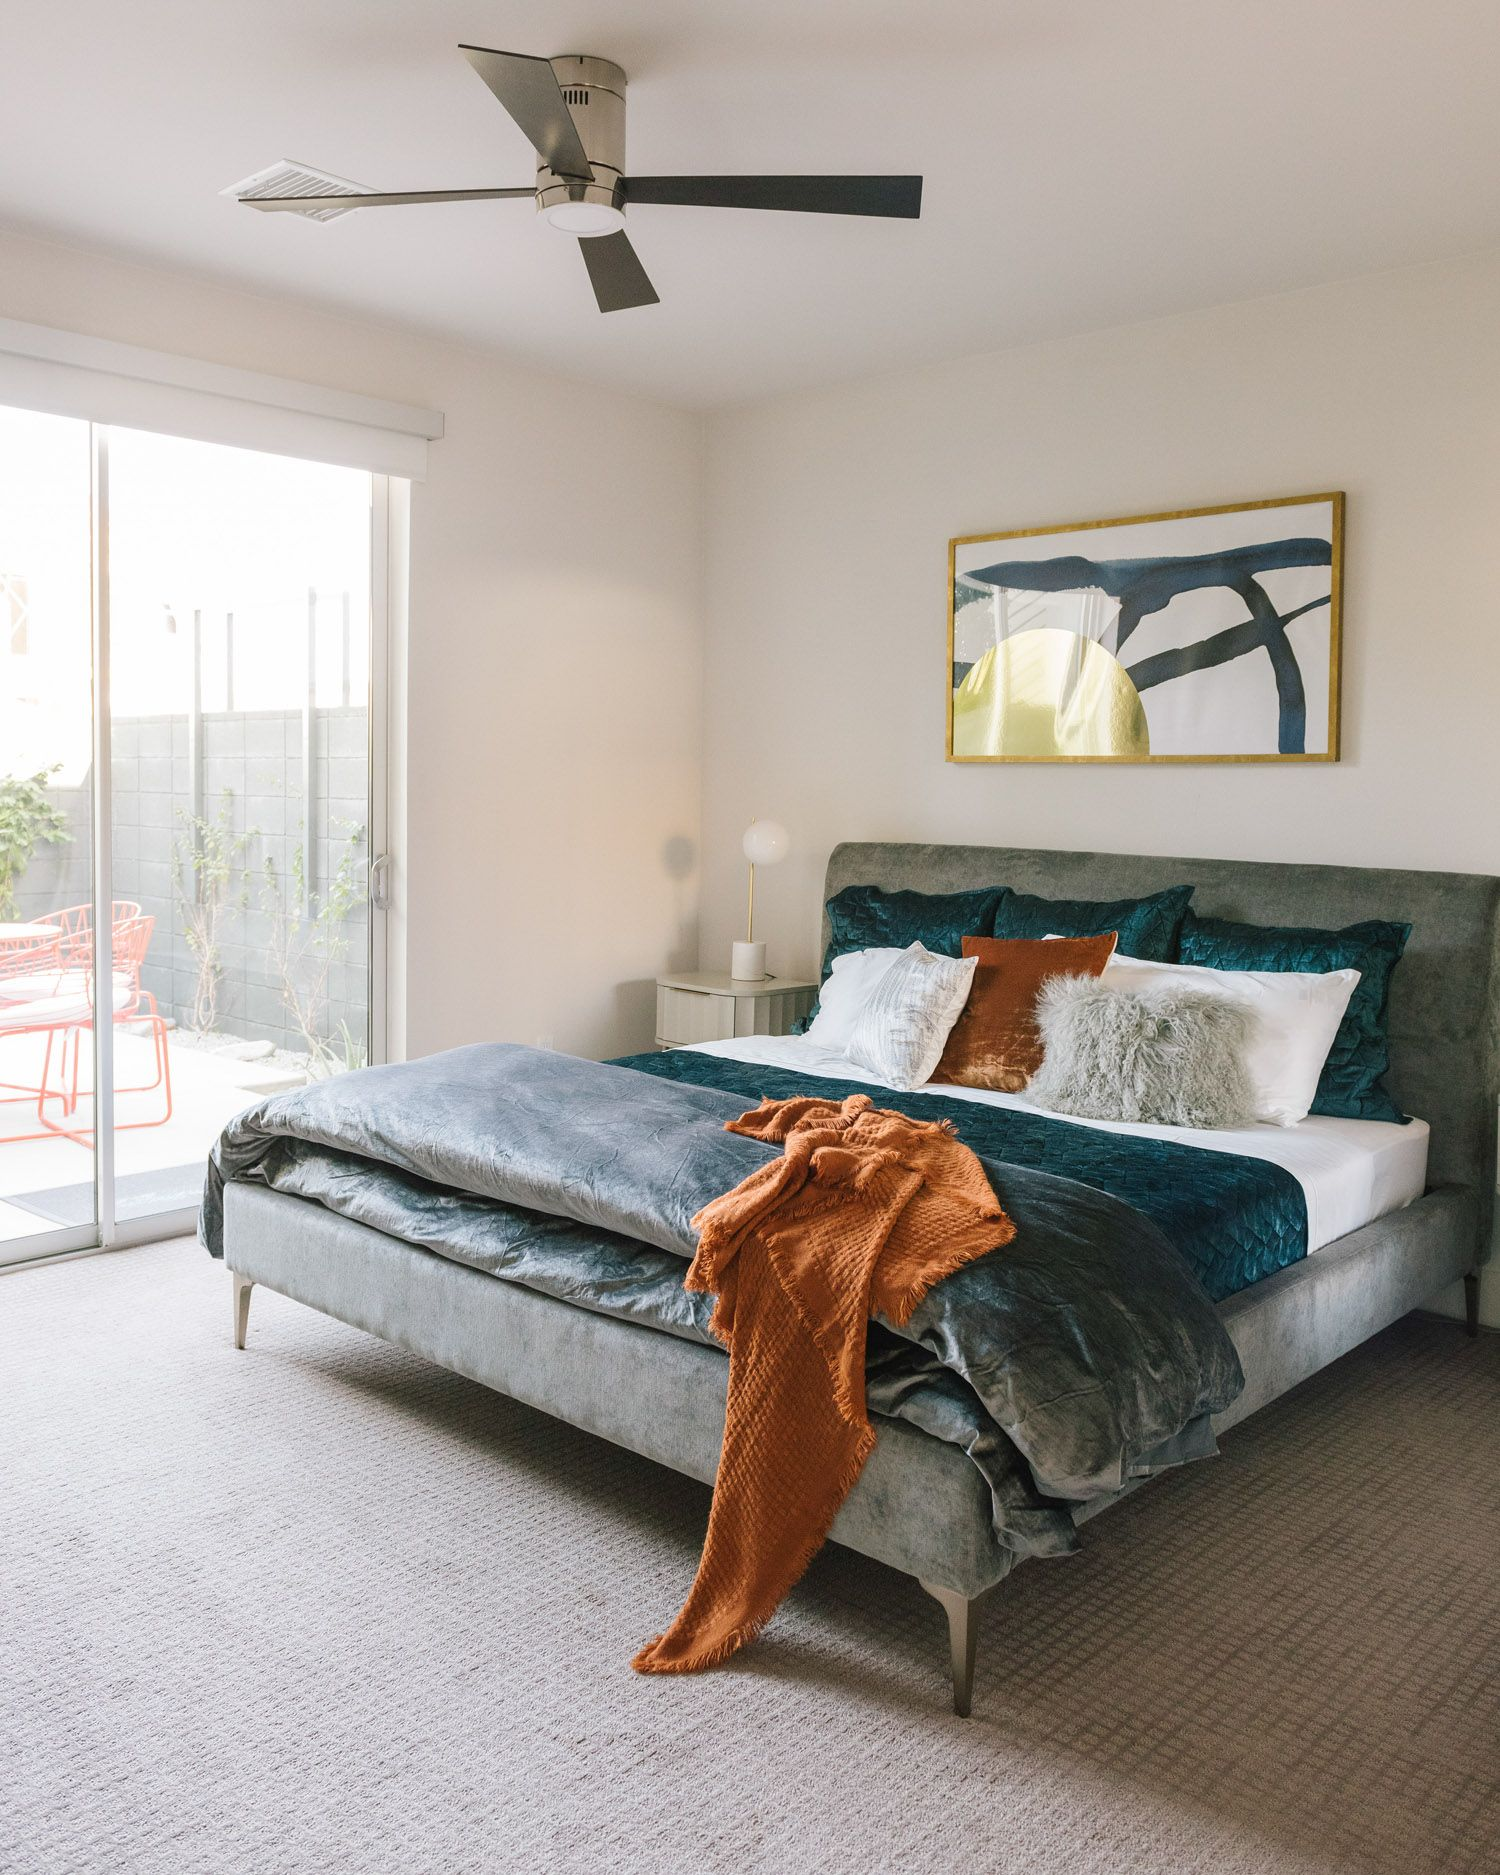 Velvet Bedding With White Gray Blue And Rusty Orange Accents